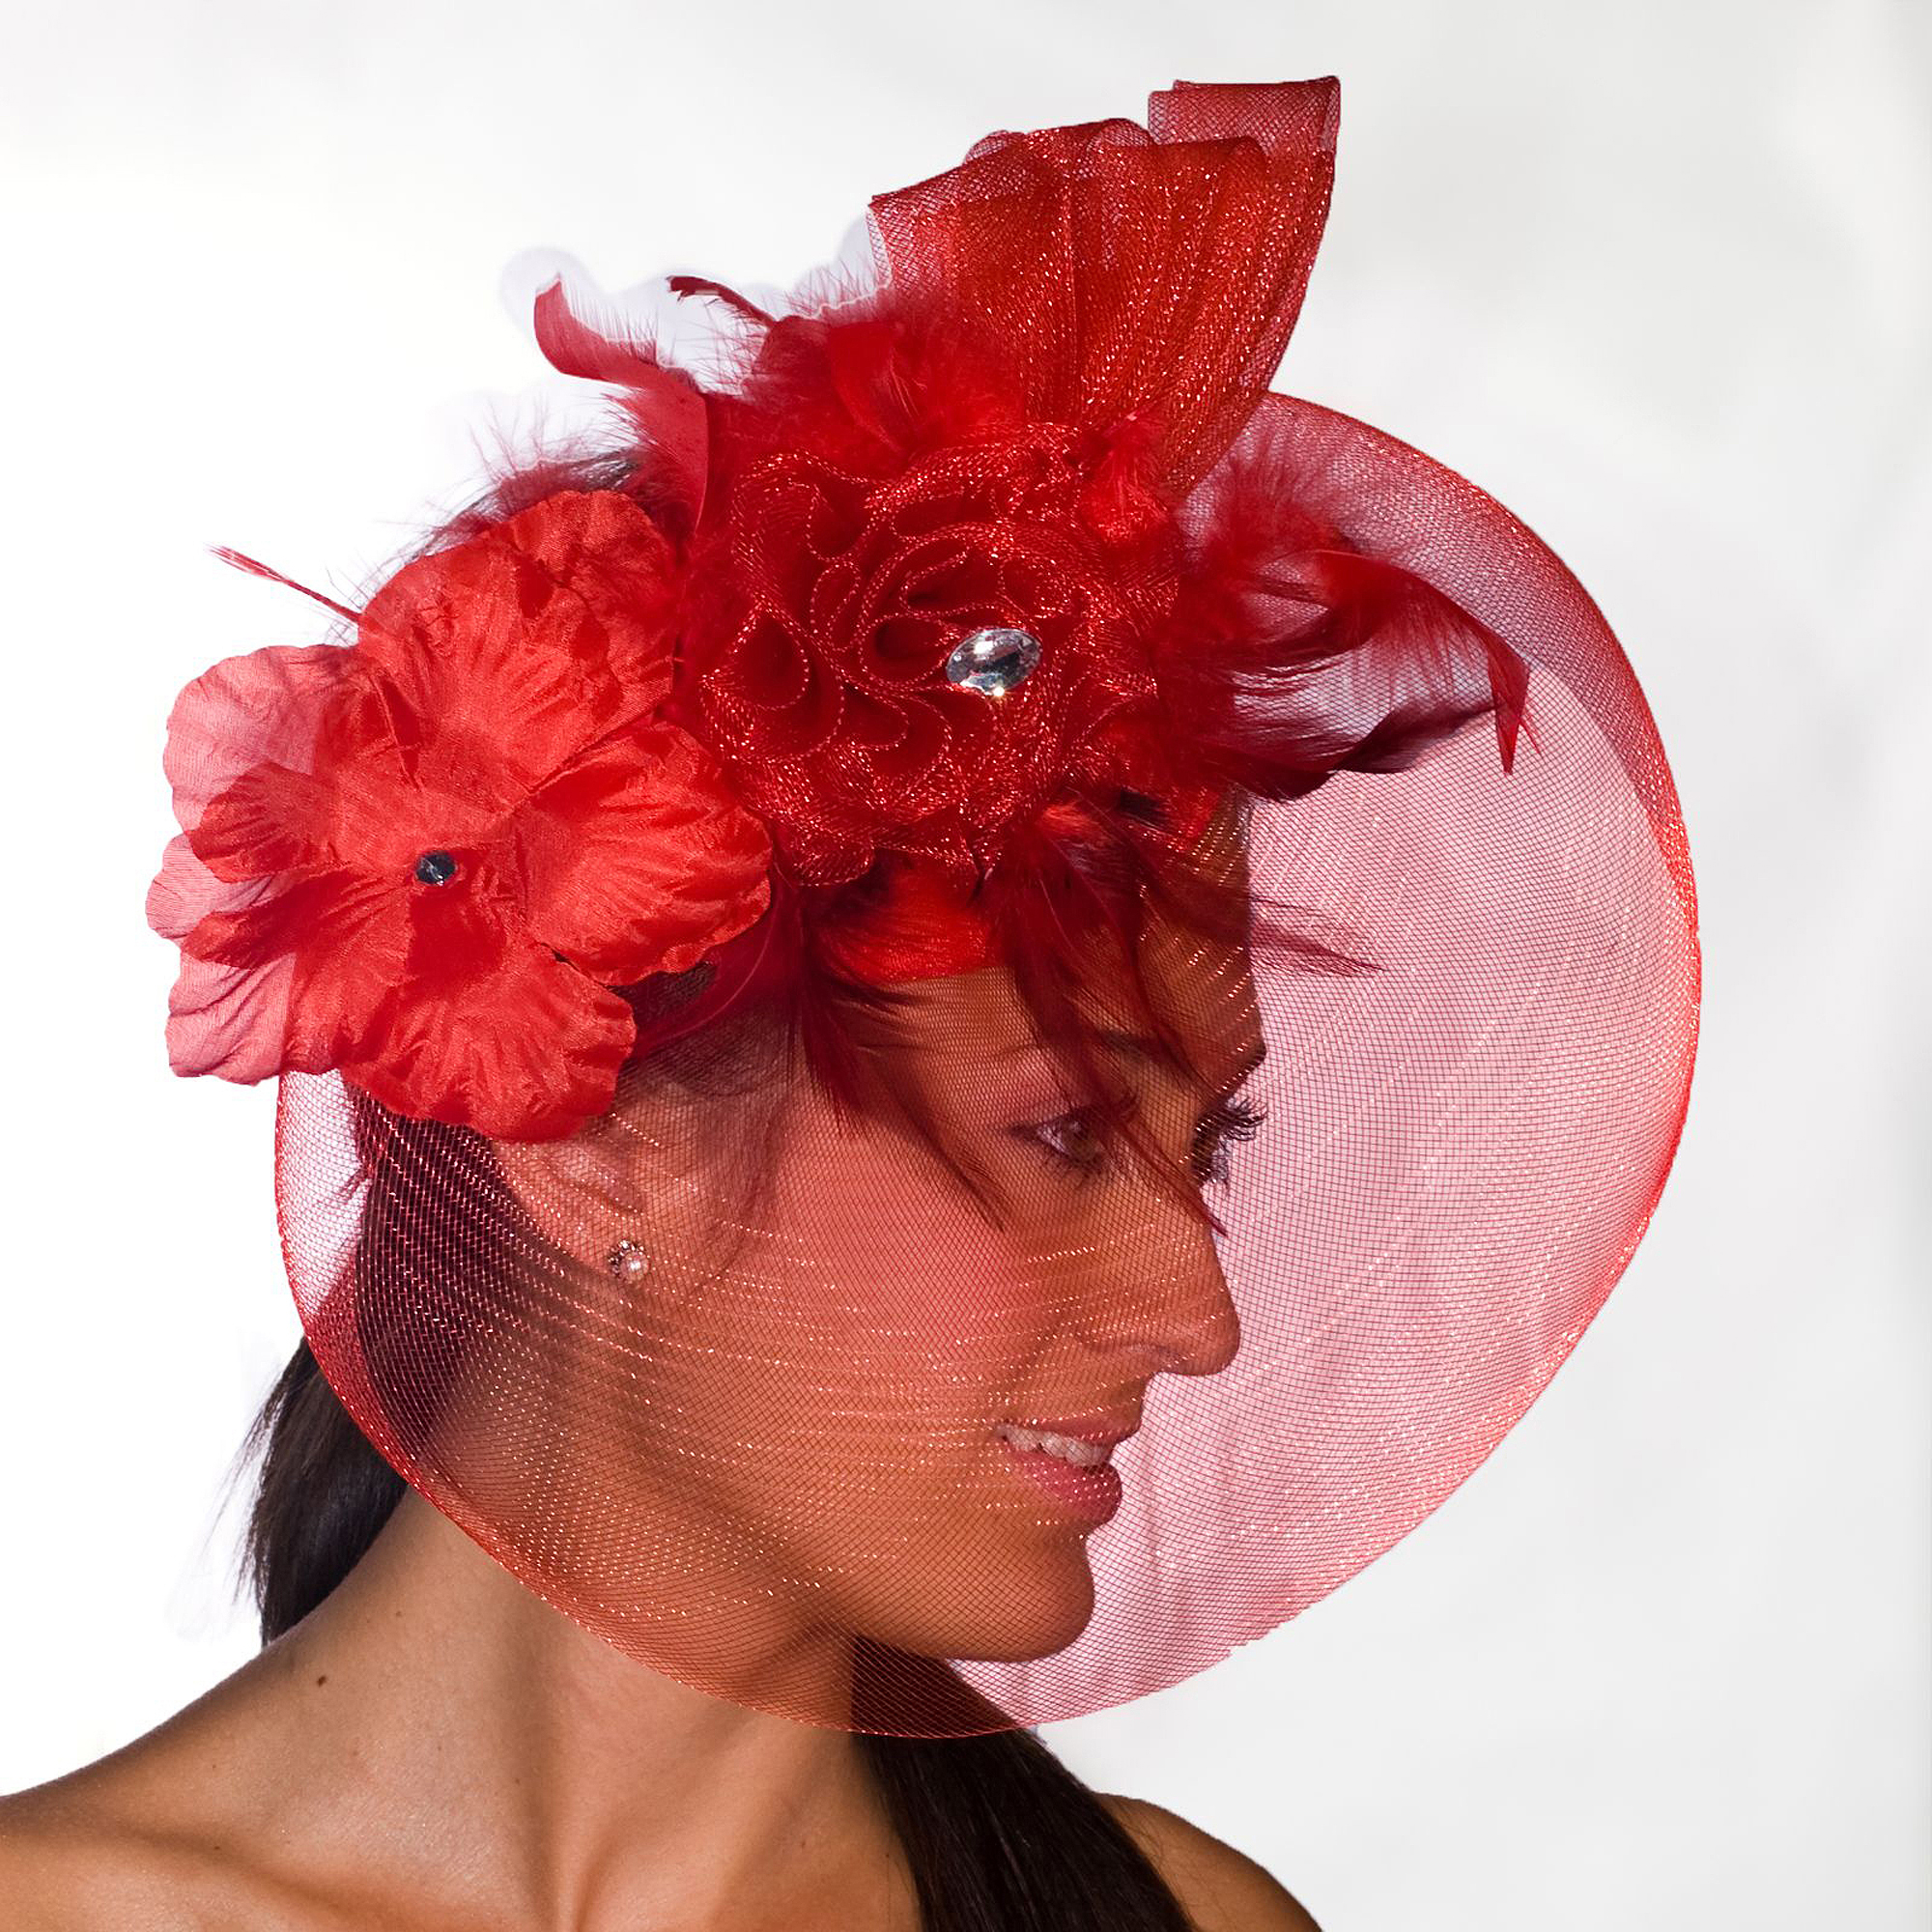 Sunnywood Red Derby Hat with Flowers Adult Costume Accessory